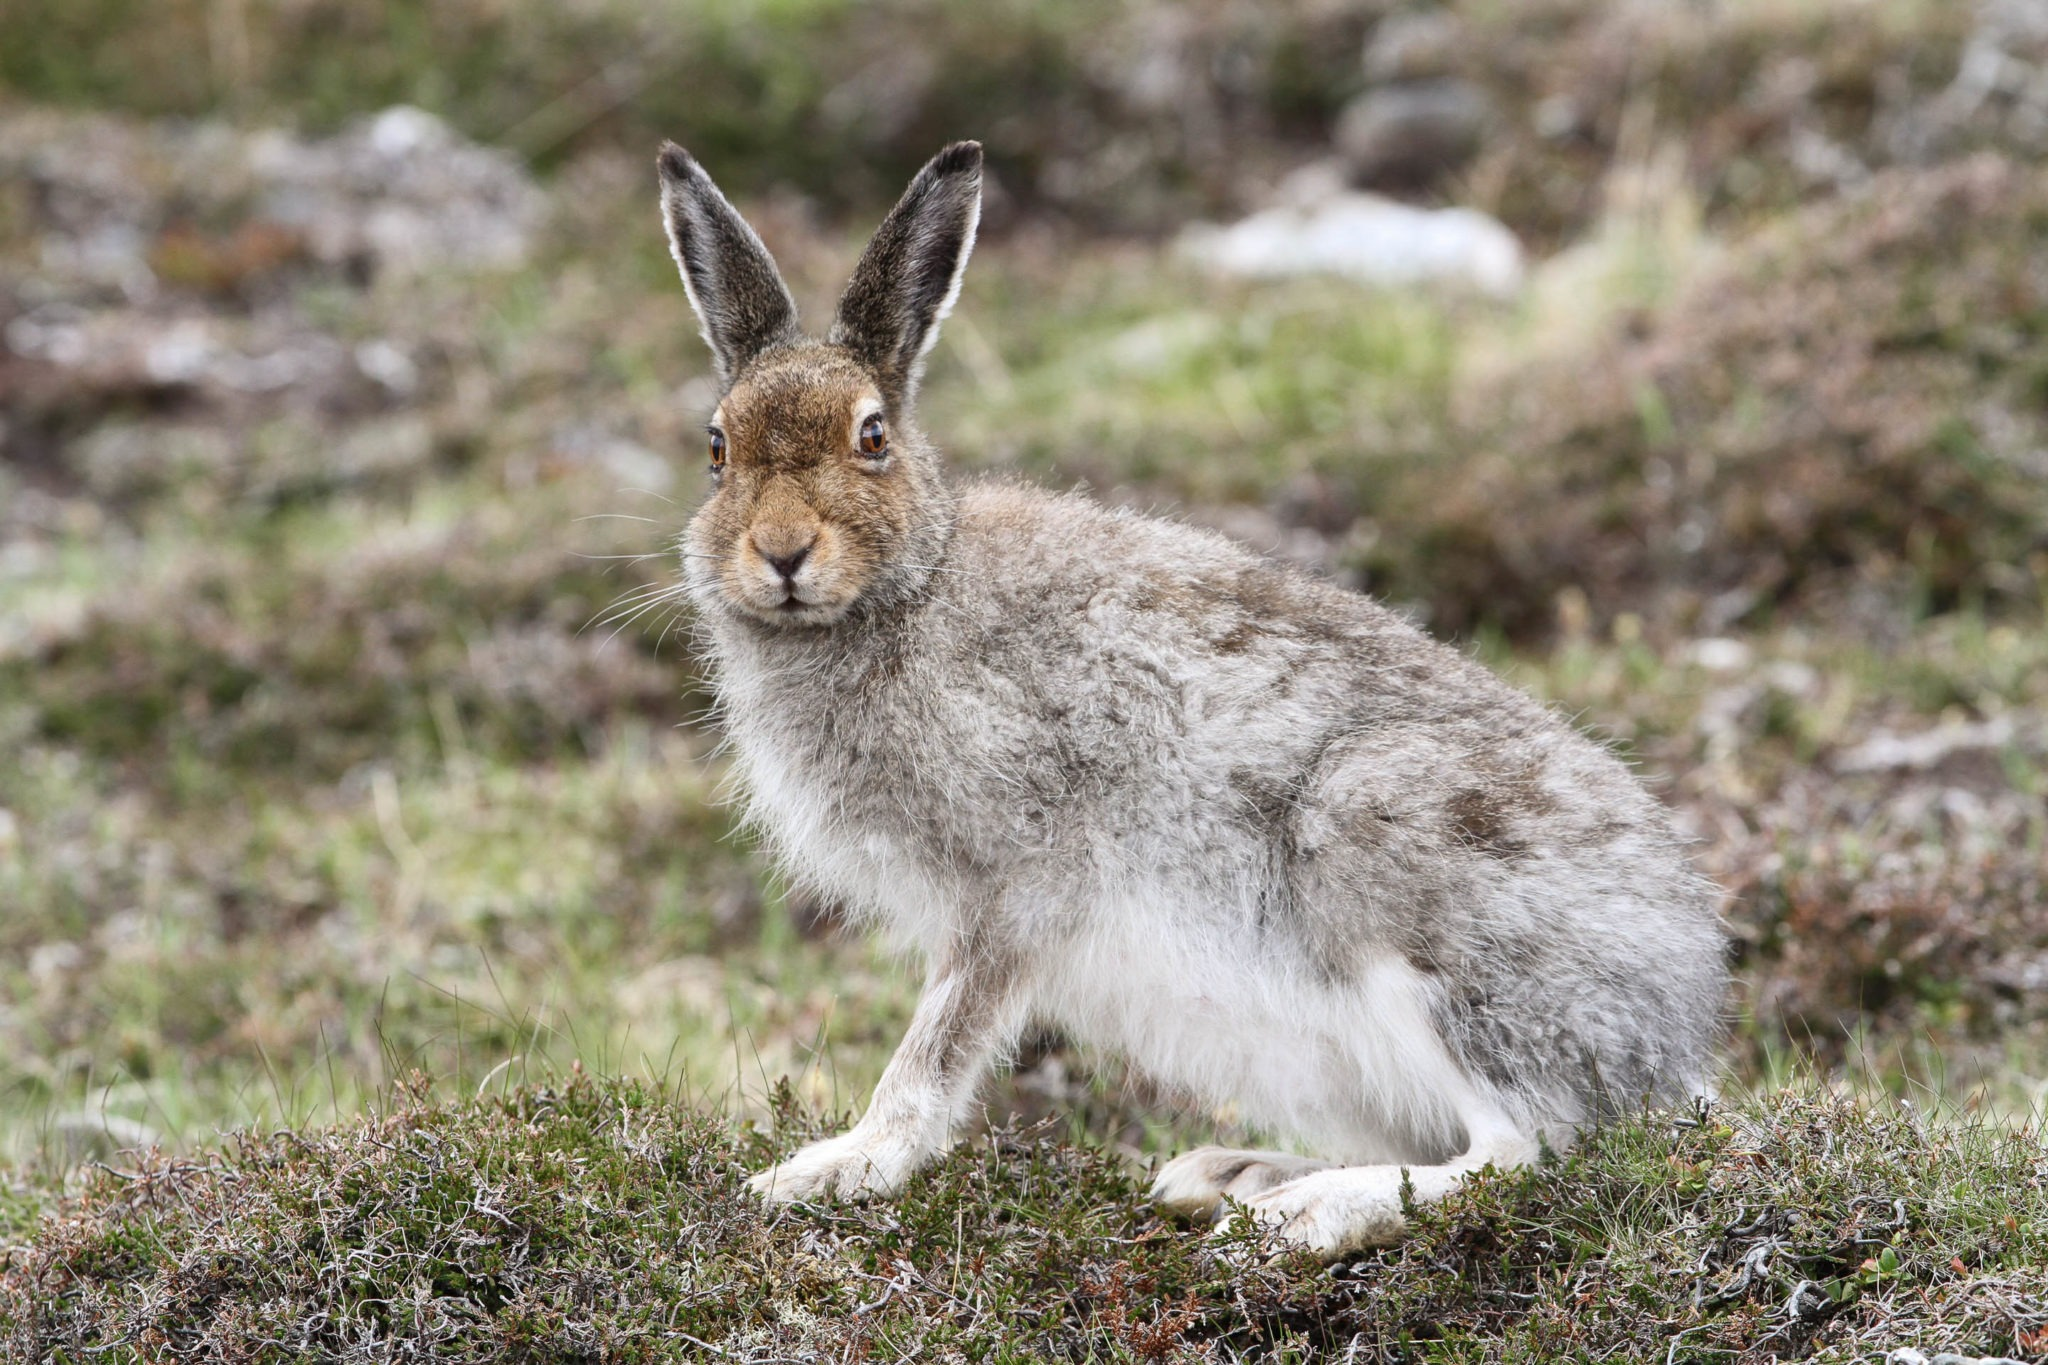 Mountain Hare on Ben Nevis, Ben Nevis Guides